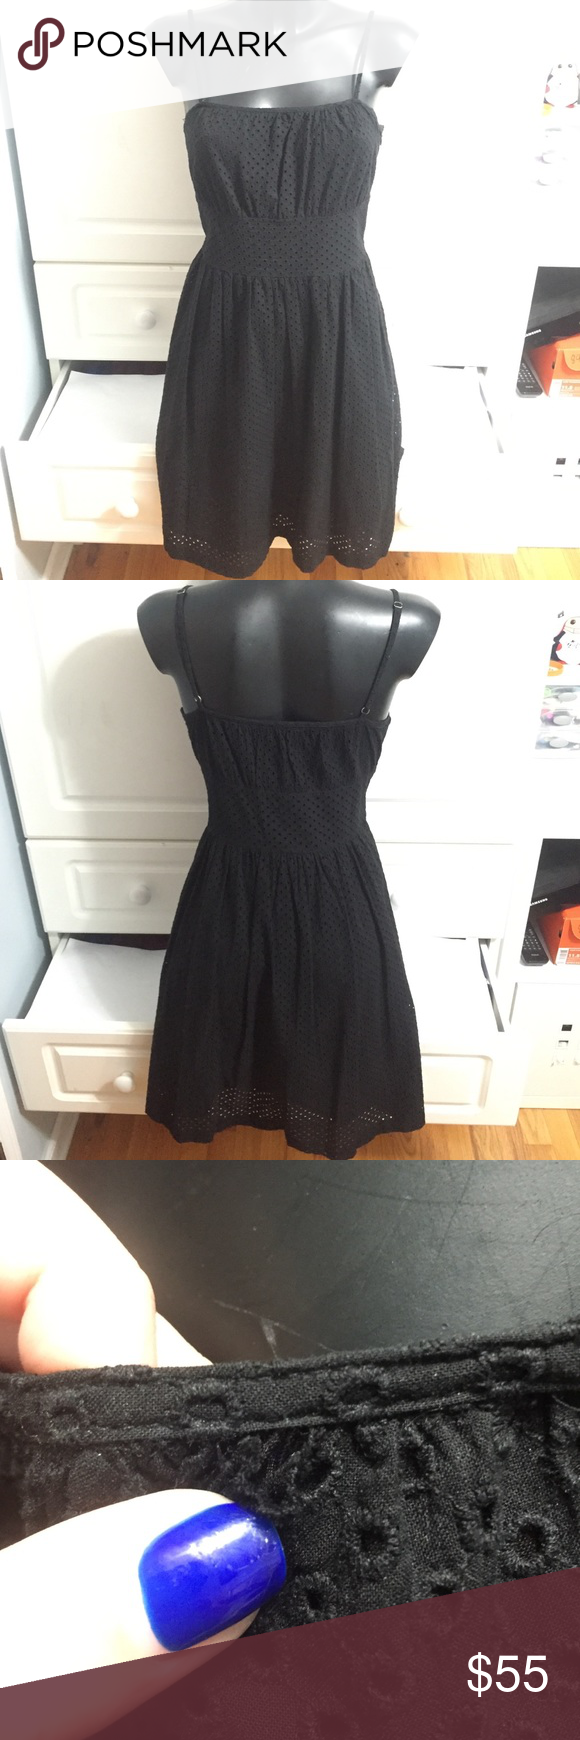 """Theory Black Eyelet Dress In good condition. 35.5"""" long. Has adjustable straps, a side zipper, and lining underneath. There is a small hole by the neckline which is a very easy fix (shown in picture 3) and has some minor discoloration under the armpits. Other than that, this dress is beautiful on. Make me an offer. Theory Dresses"""